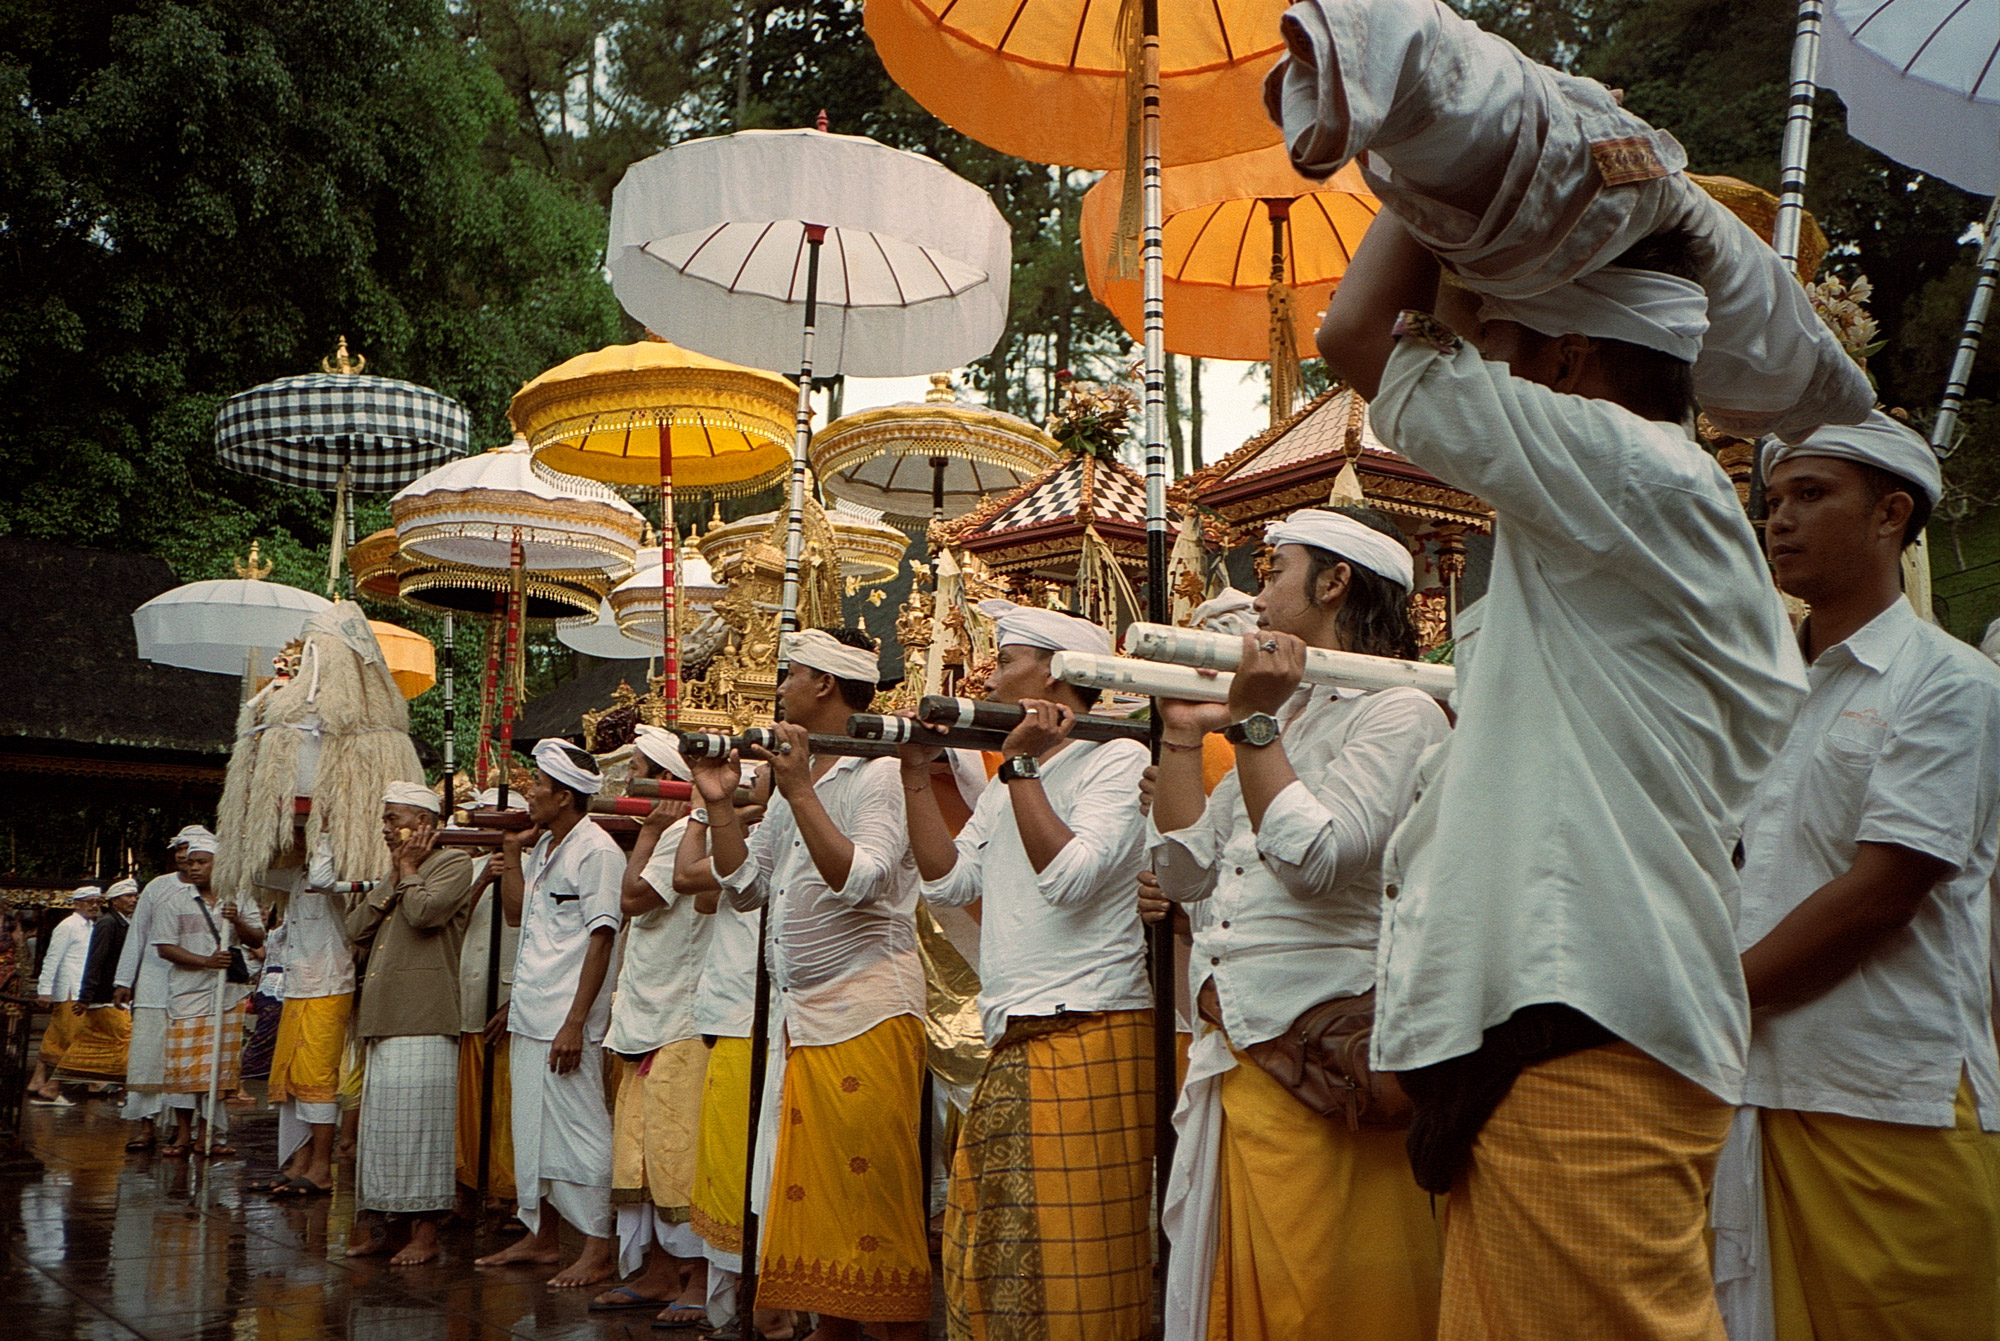 Offerings Ceremony, Tirta Empul Temple, Eastern Travels, Ubud, Photography By Ioannis Koussertari